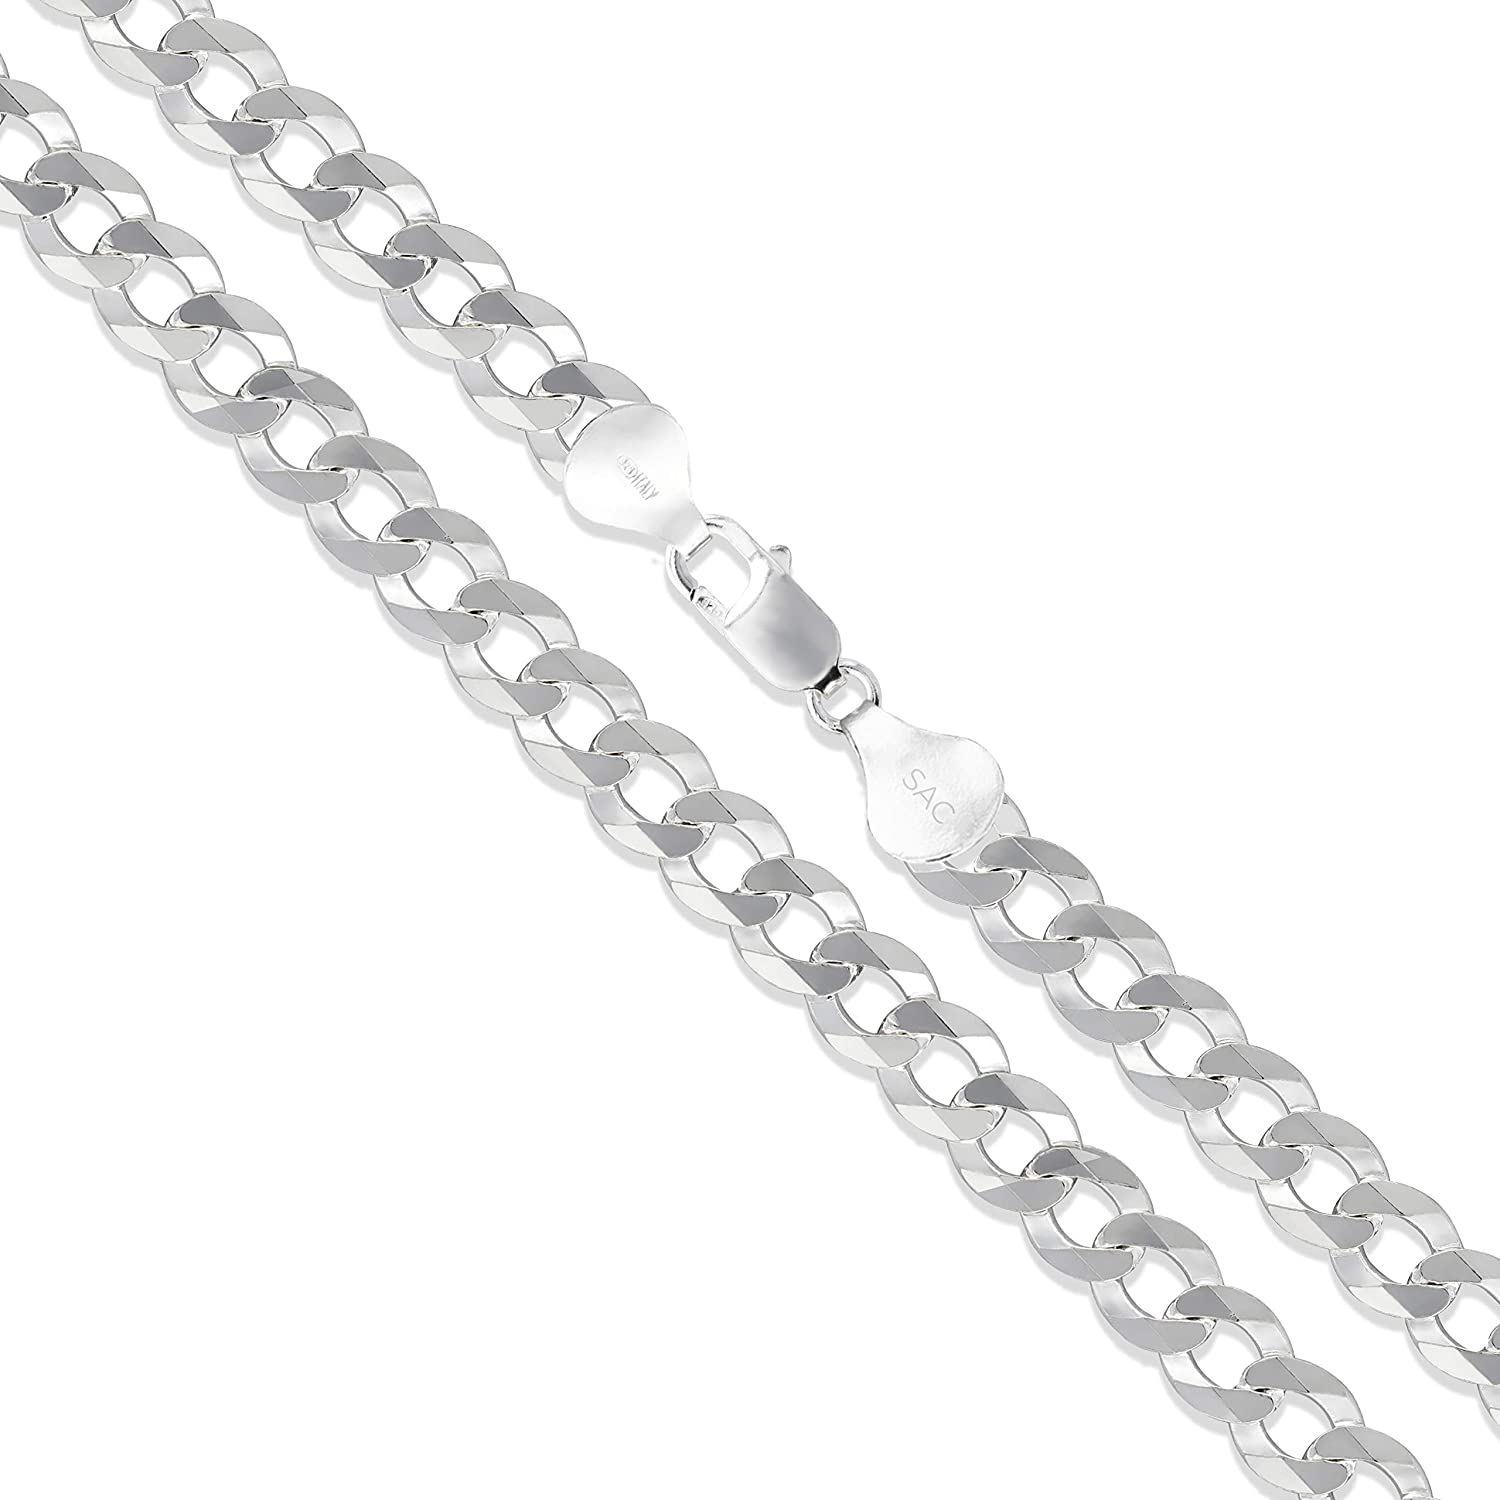 Men's Sterling Silver Flat Curb 925 5.2mm-14.8mm Solid Chain Ita shopping Luxury goods